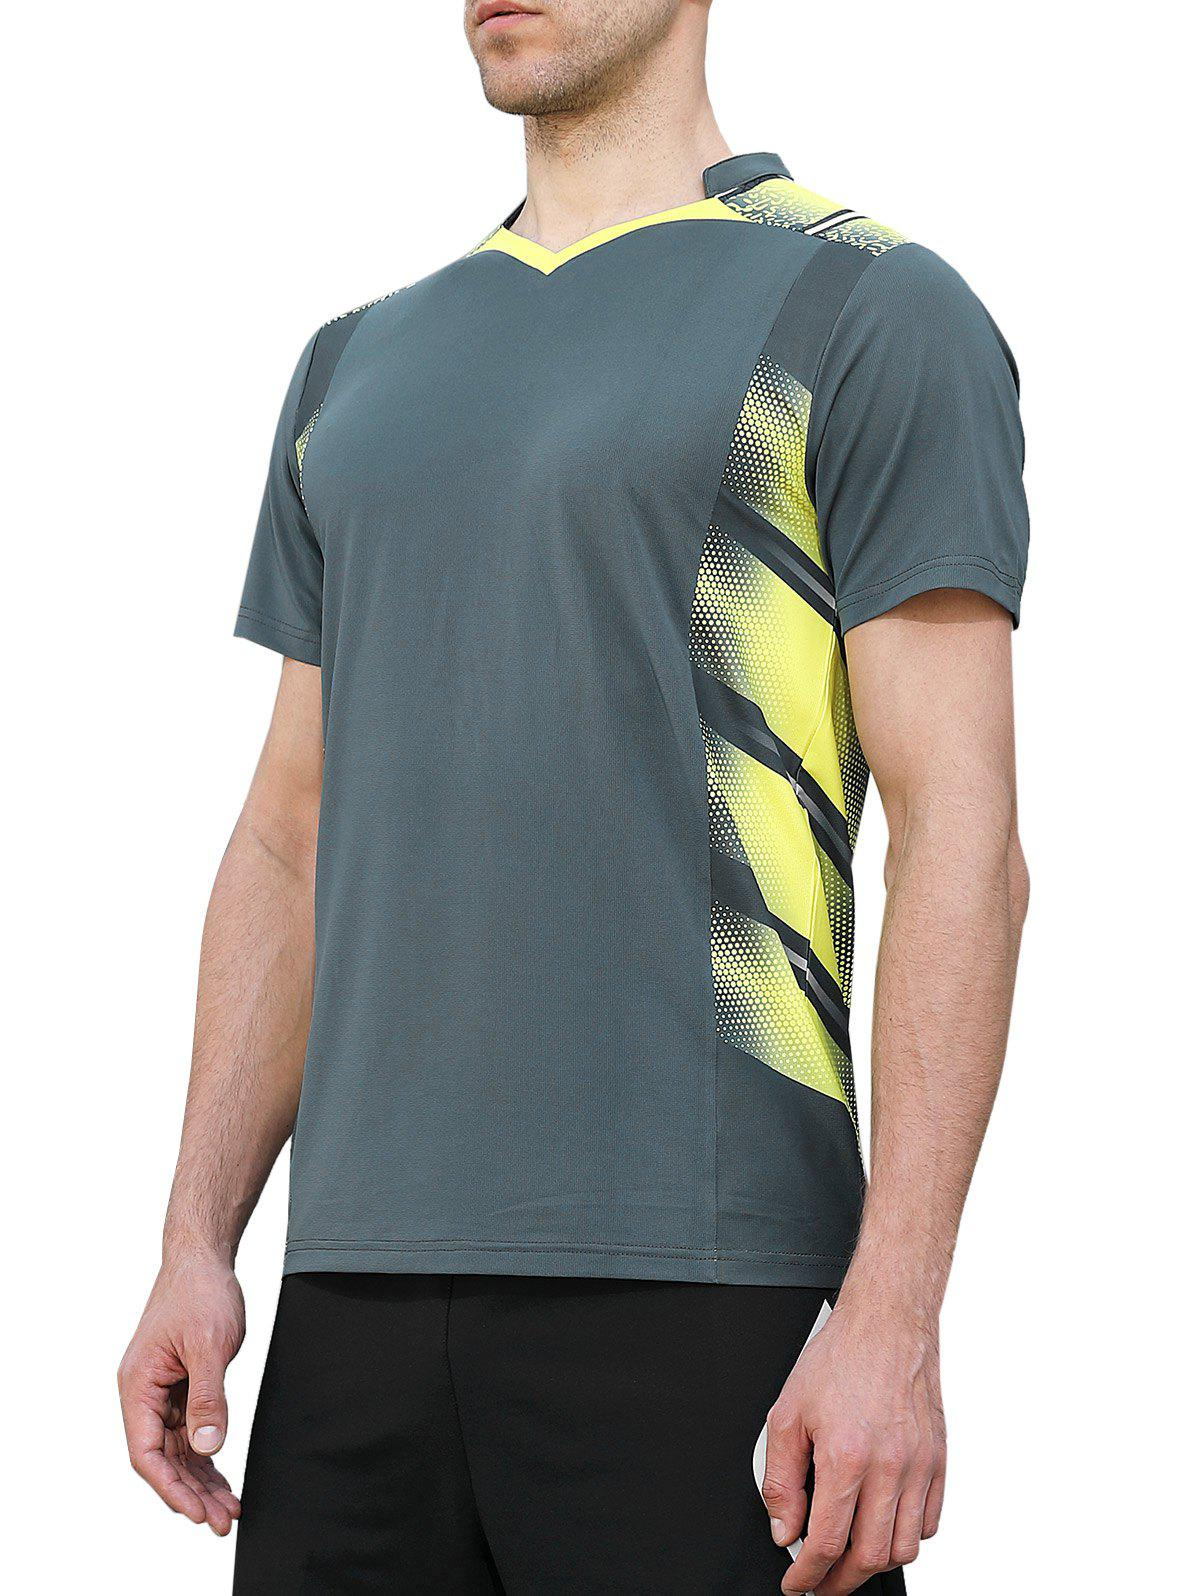 New V Neck Geometric Print Quick Dry Sports T-shirt